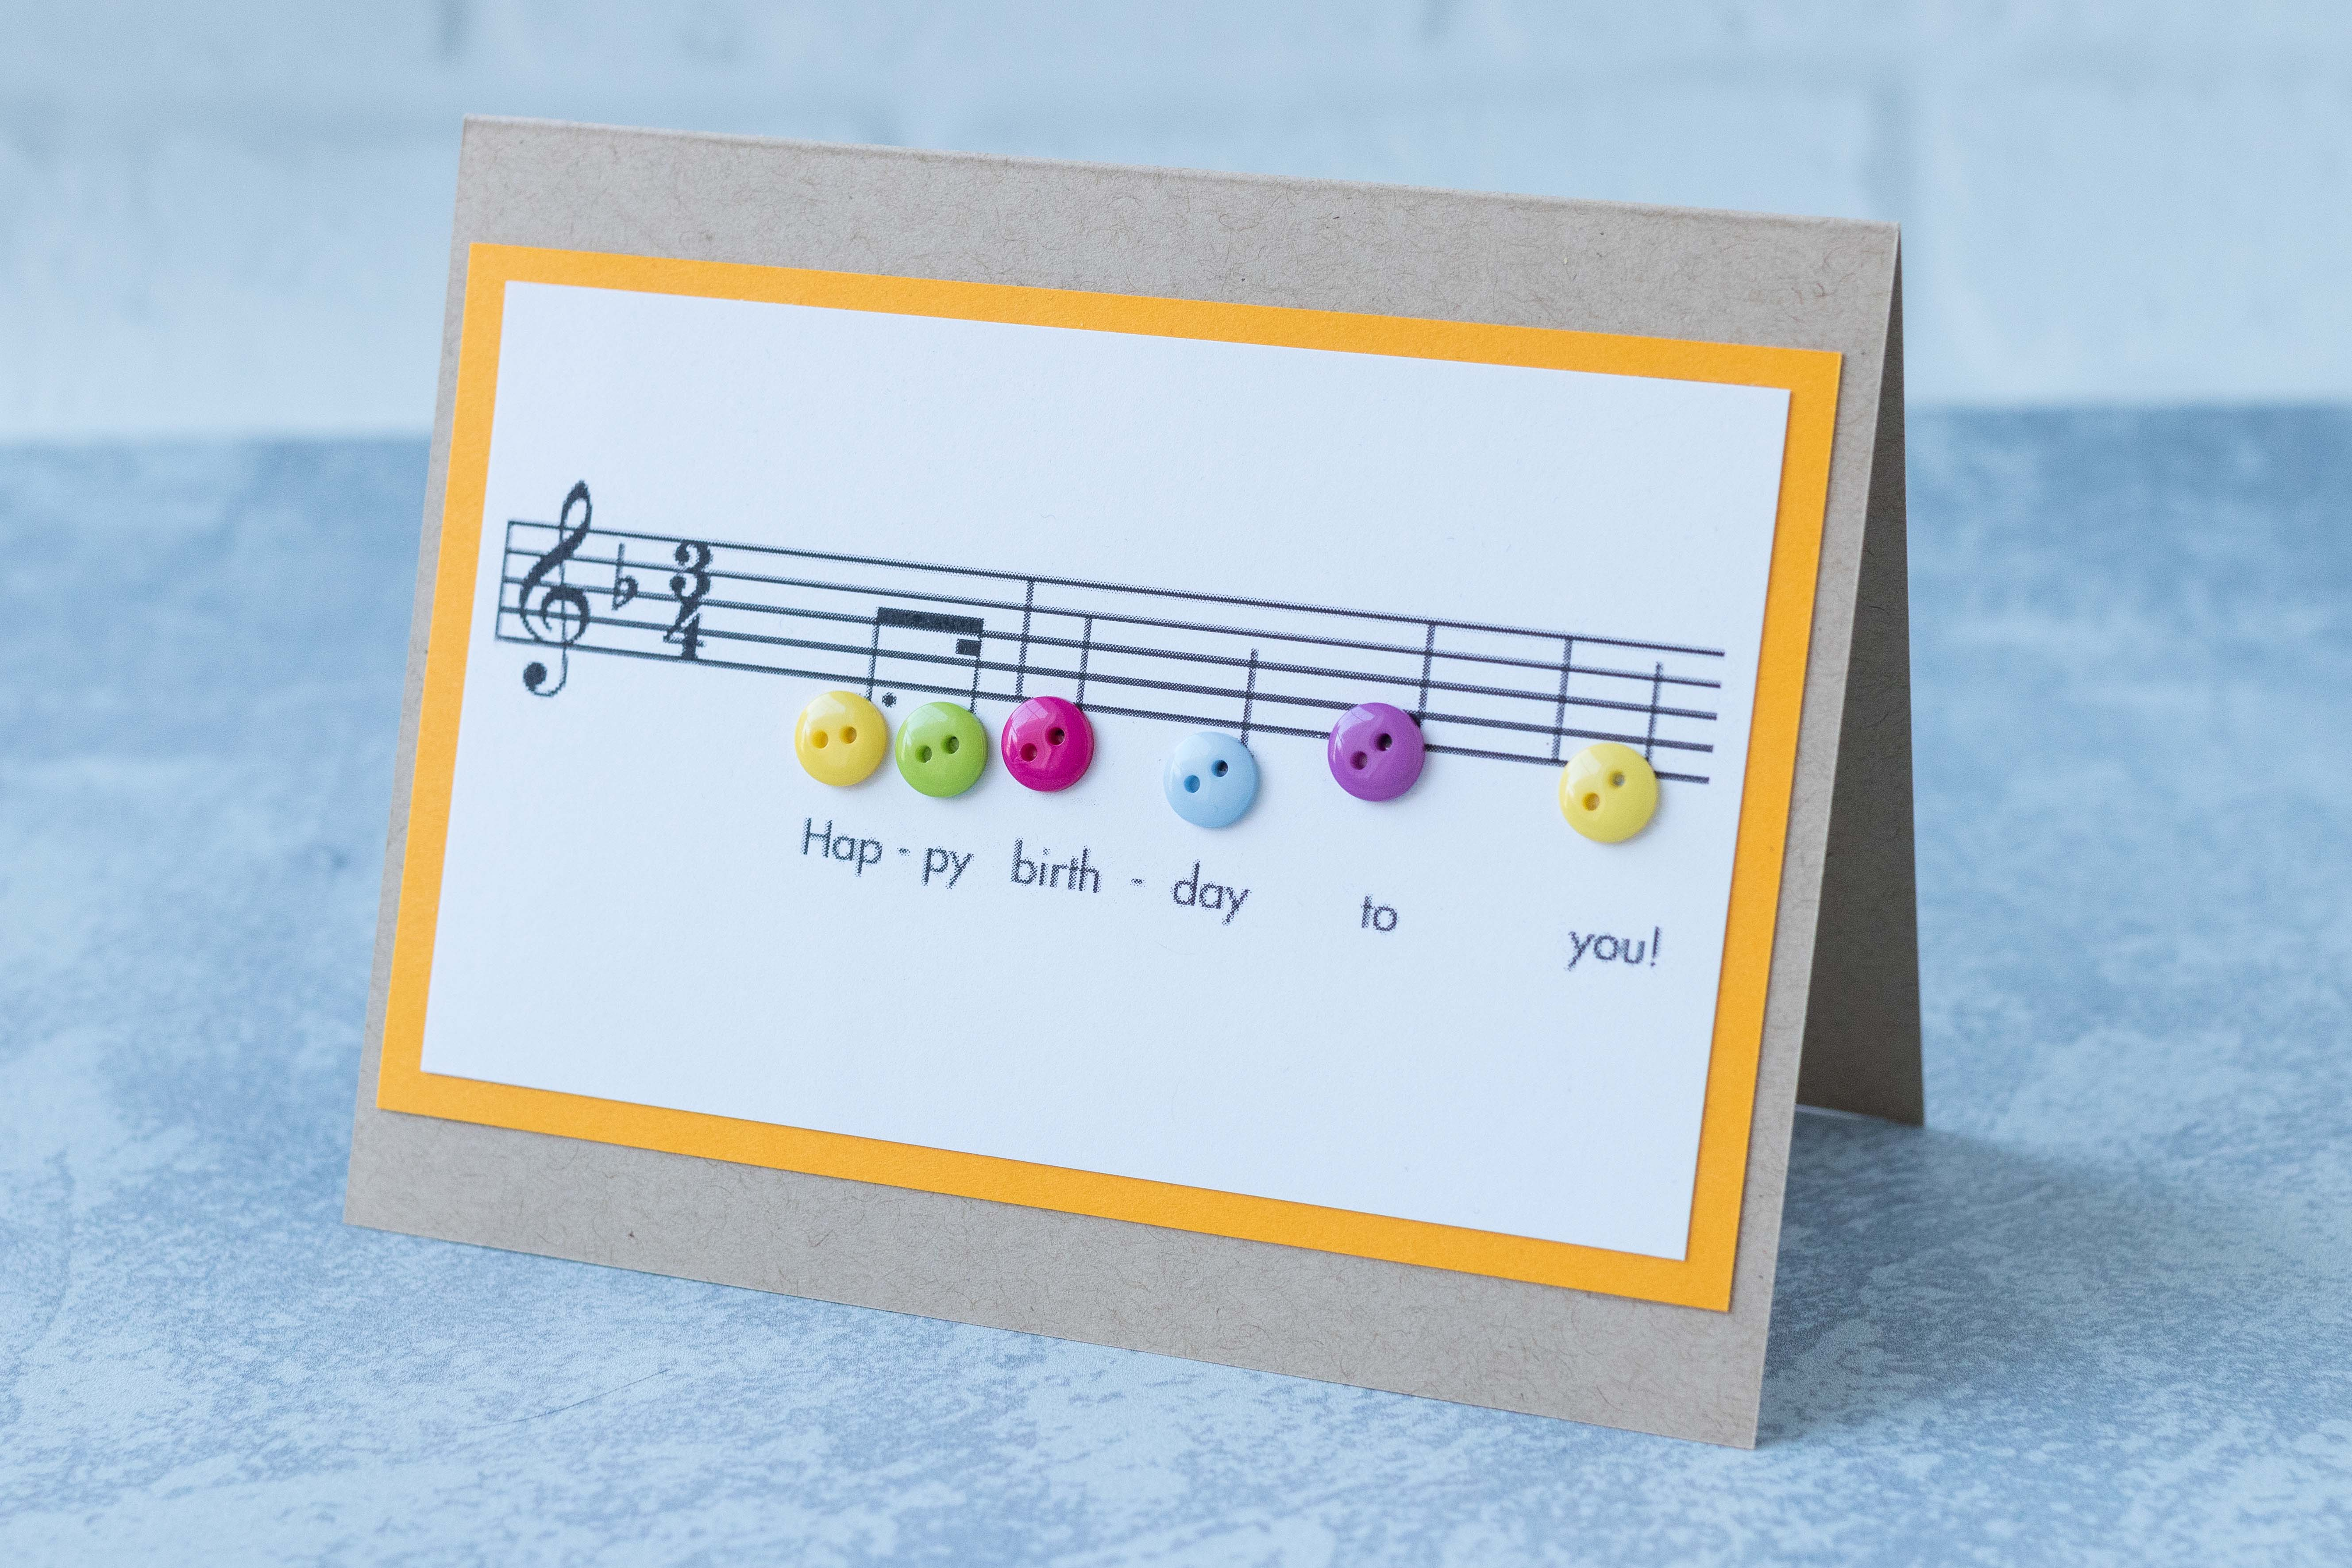 Happy birthday sheet music with buttons card, inspired by Nikelcards on Etsy. #birthdaycard #sheetmusic #happybirthday | https://www.roseclearfield.com